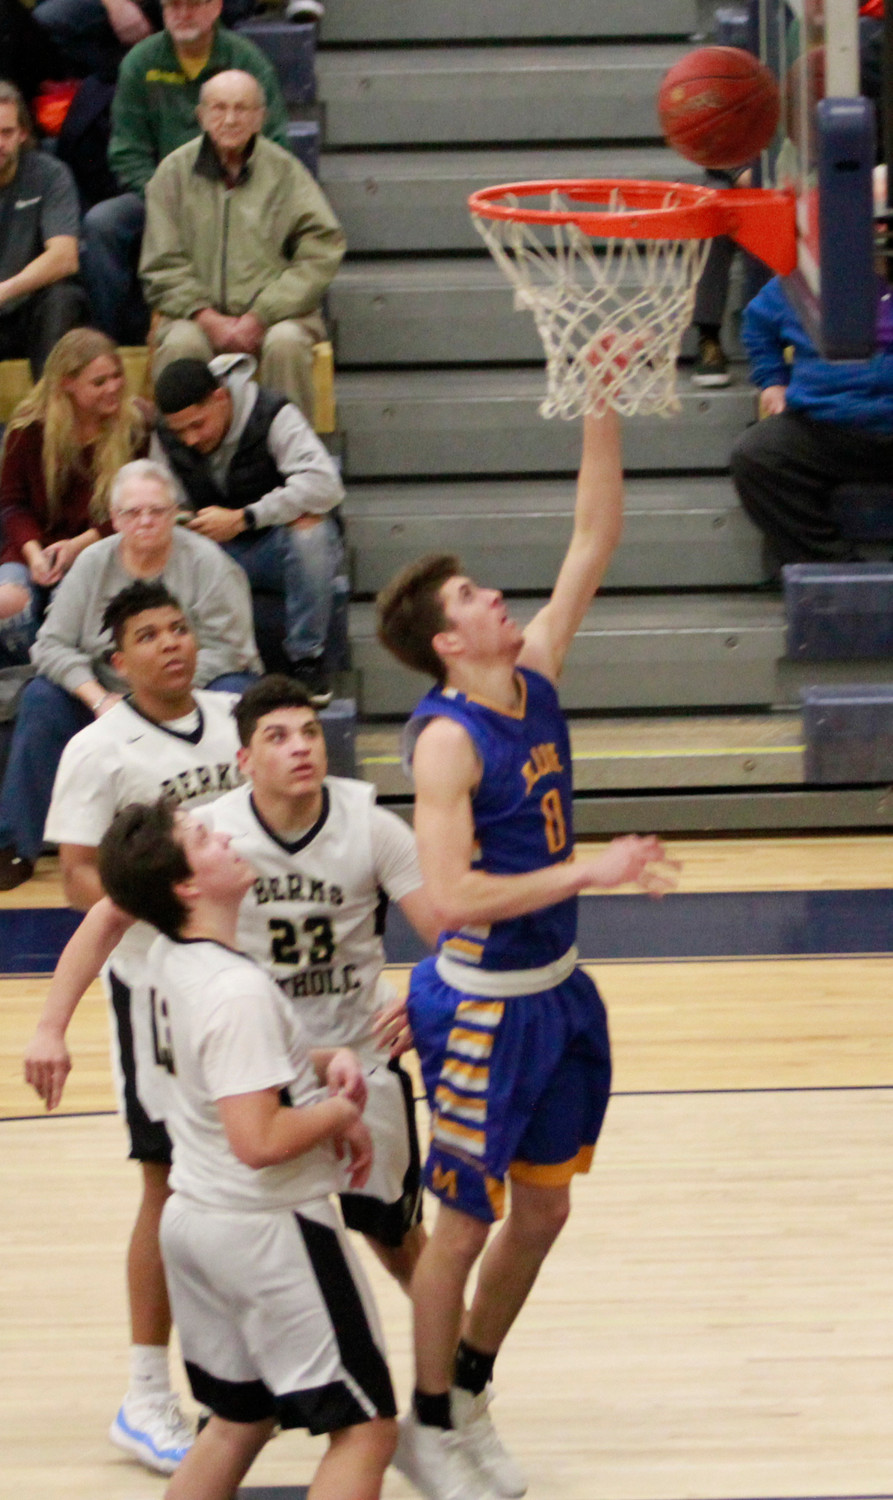 Ryan Hughes drives to the basket vs. Berks Catholic.